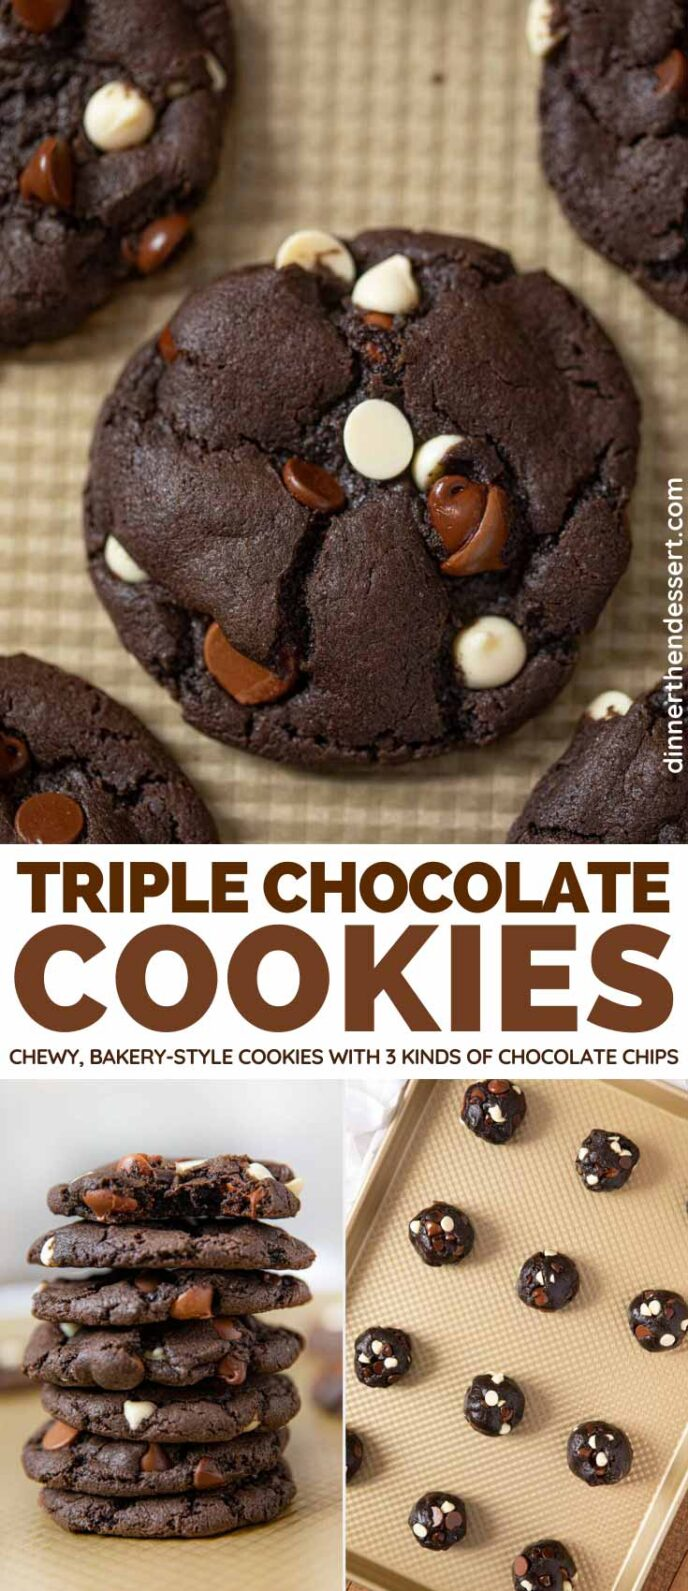 Triple Chocolate Cookies collage